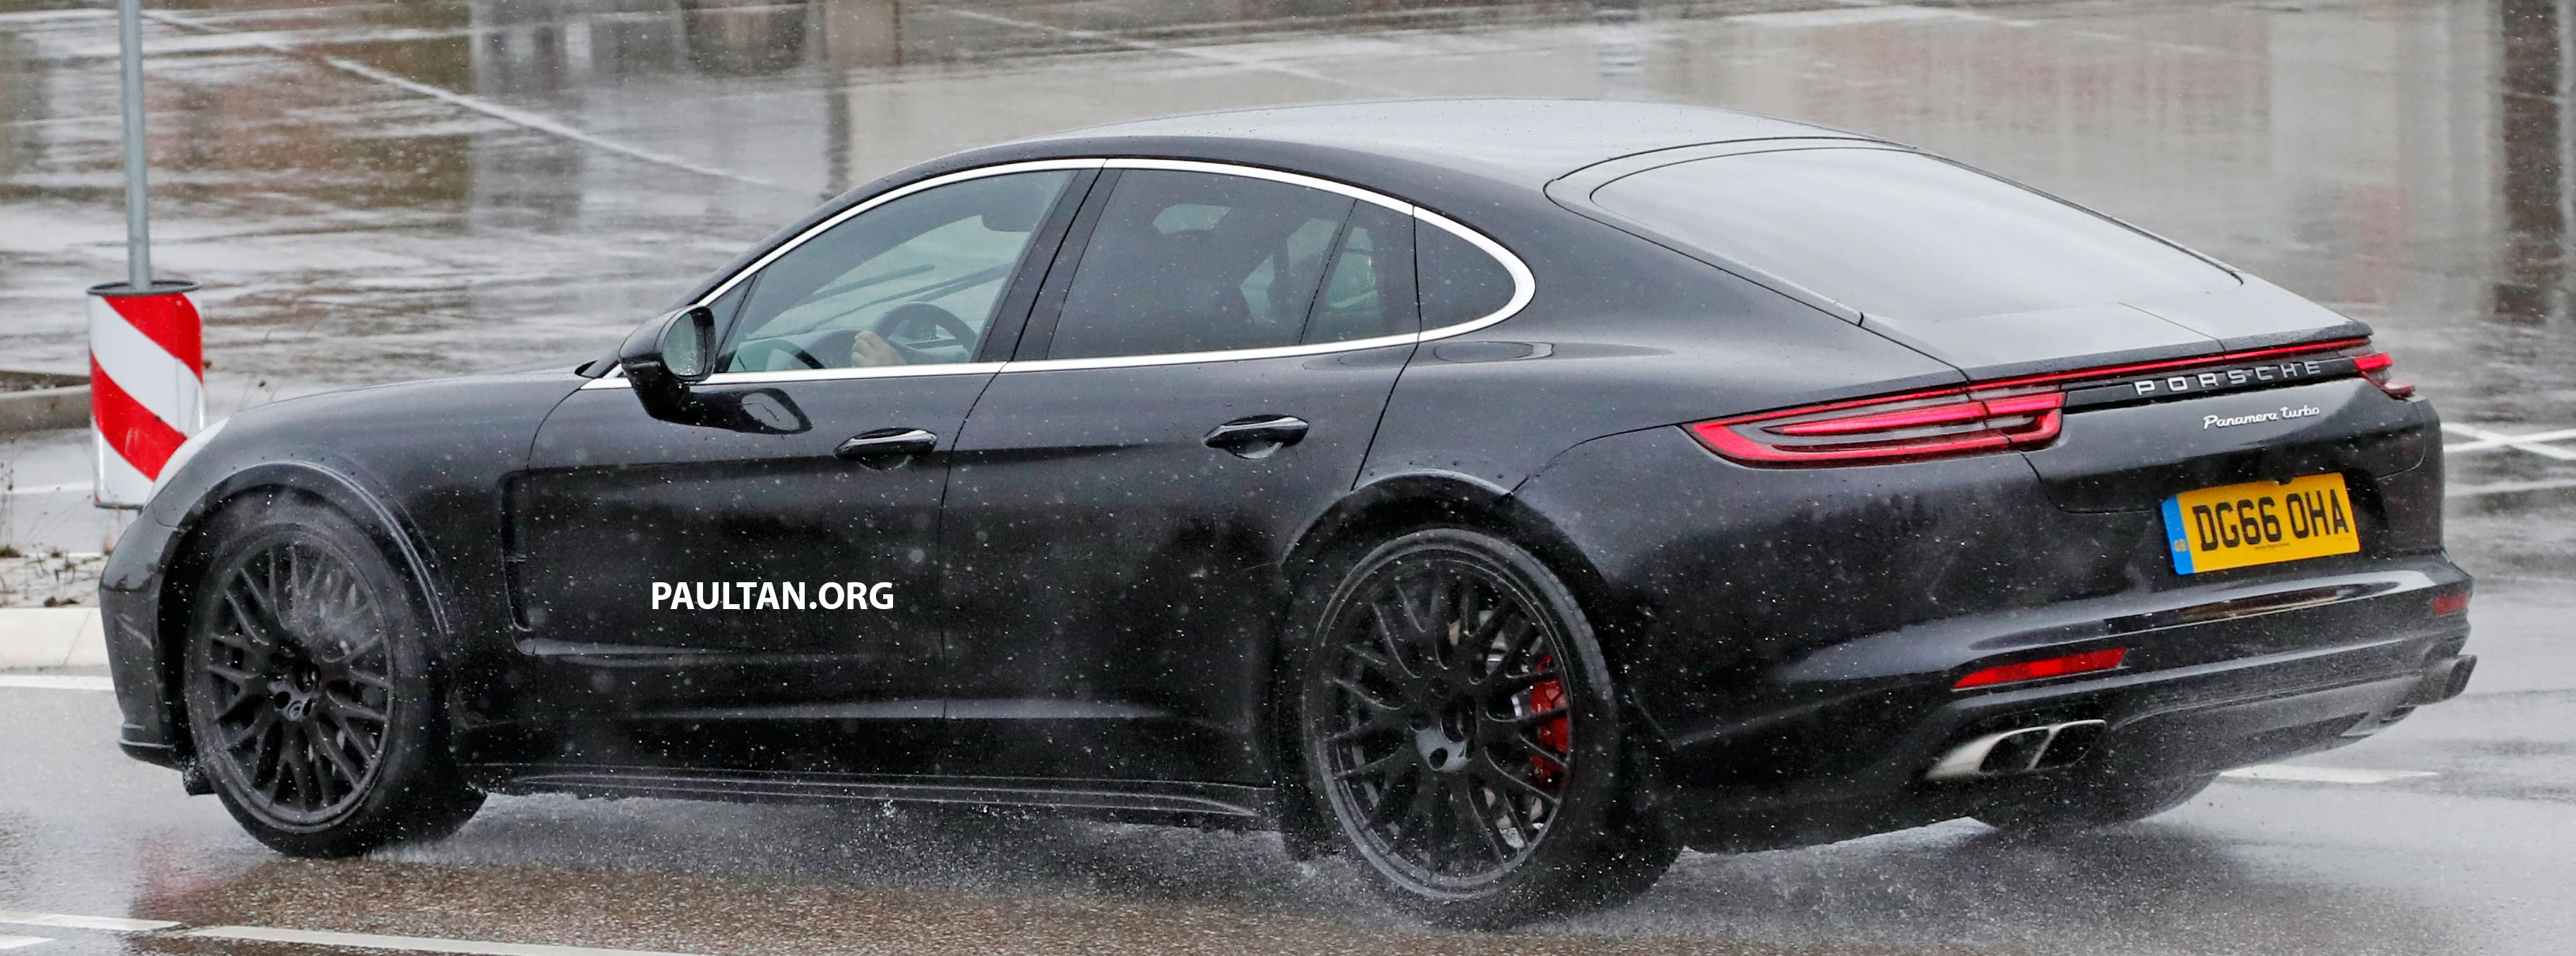 Spied Next Bentley Flying Spur With Panamera Body Paul